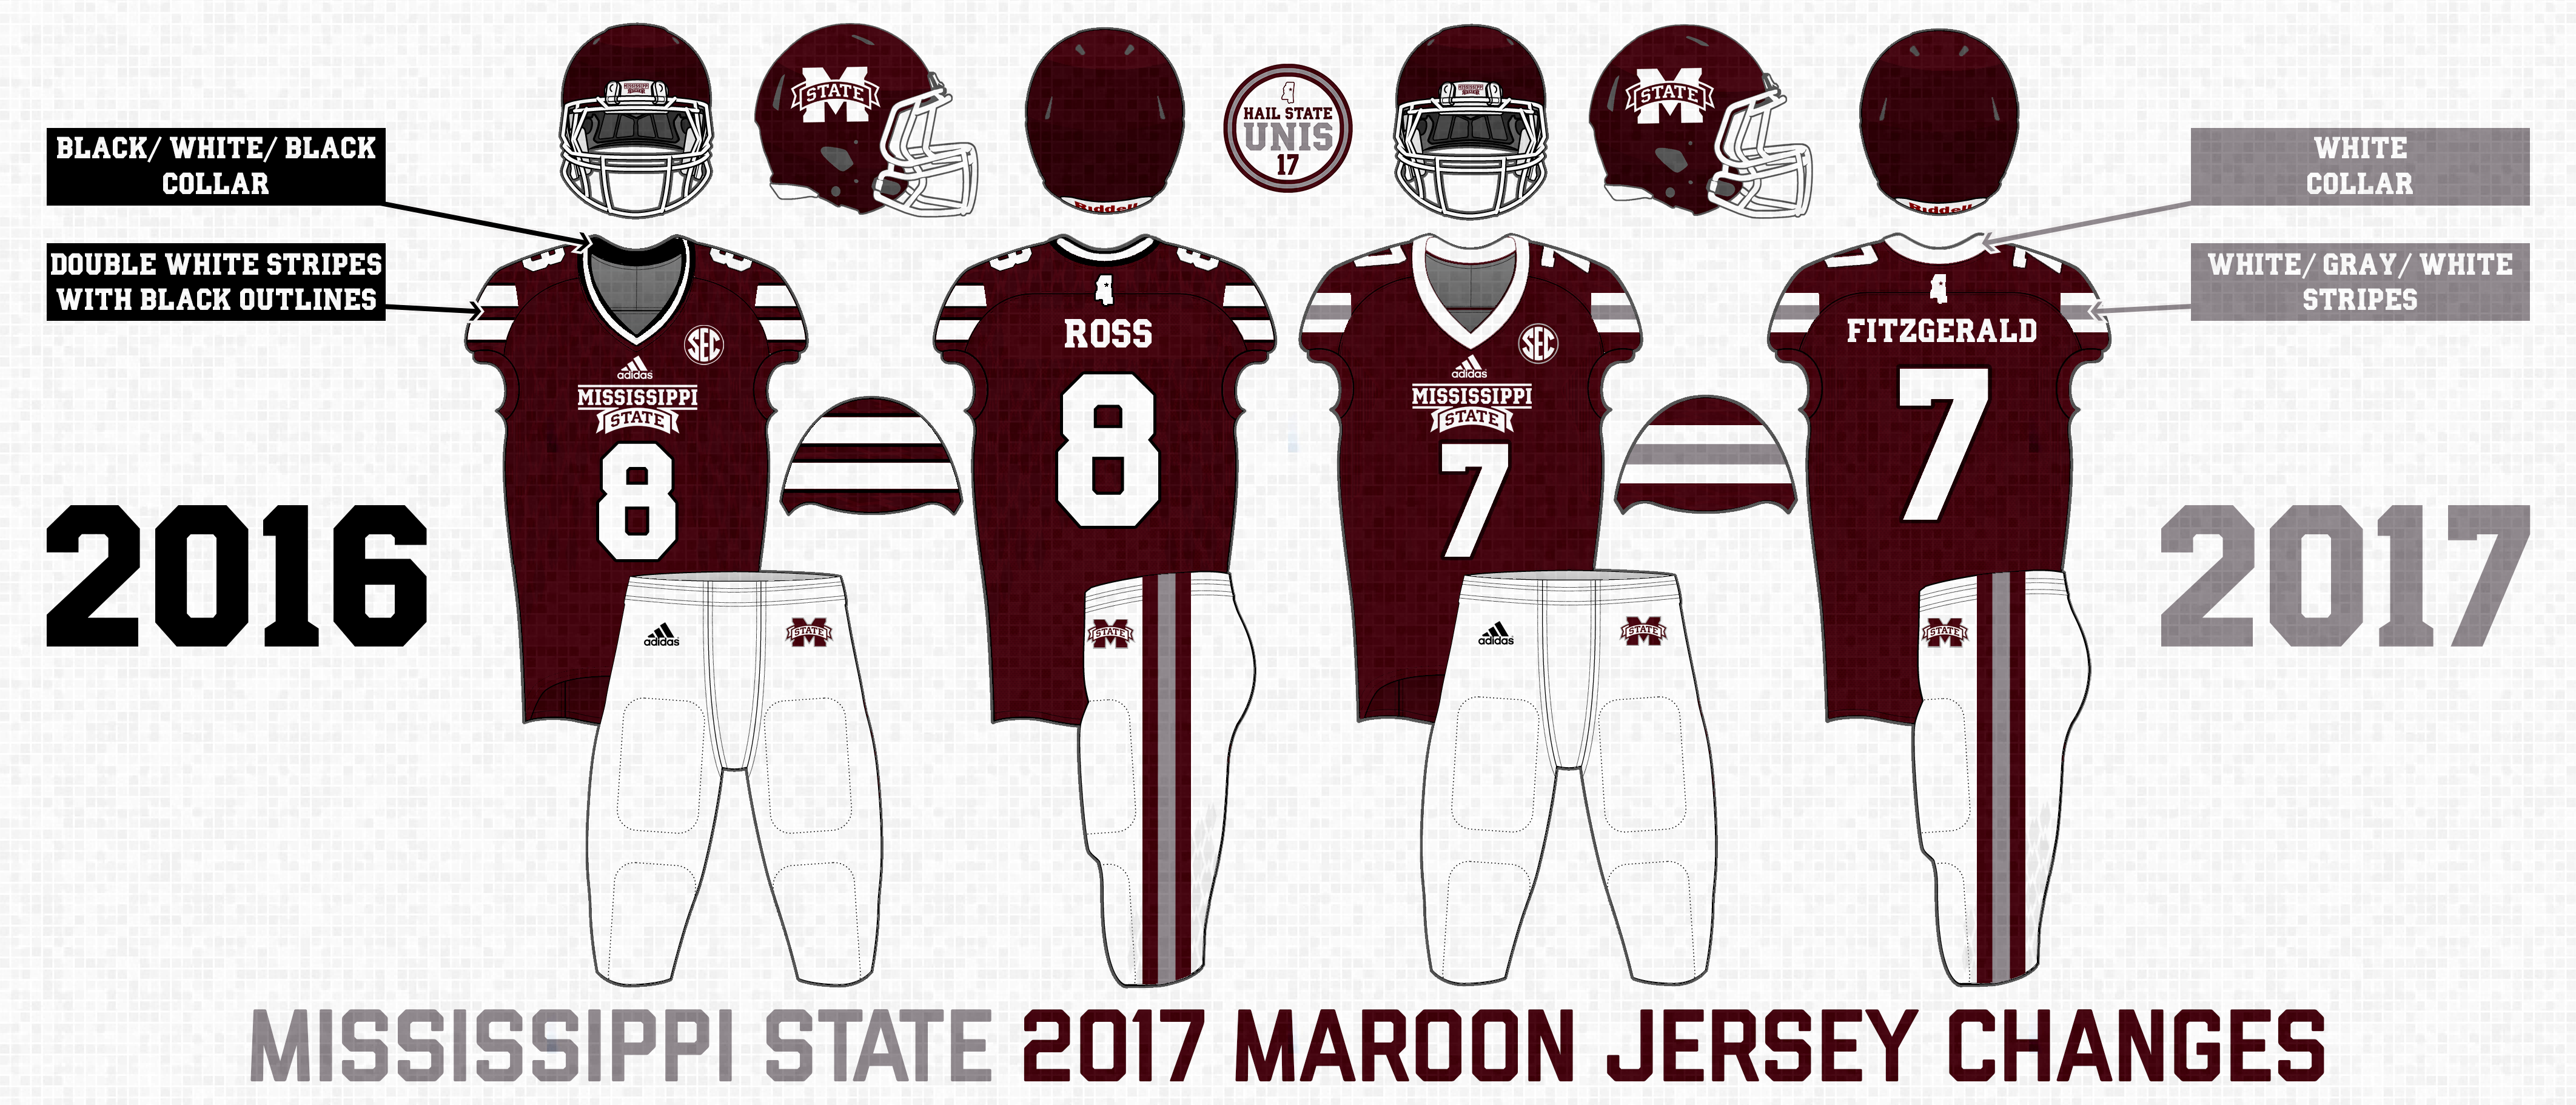 The changes to the maroon jersey in 2017 include  1bf1f2258